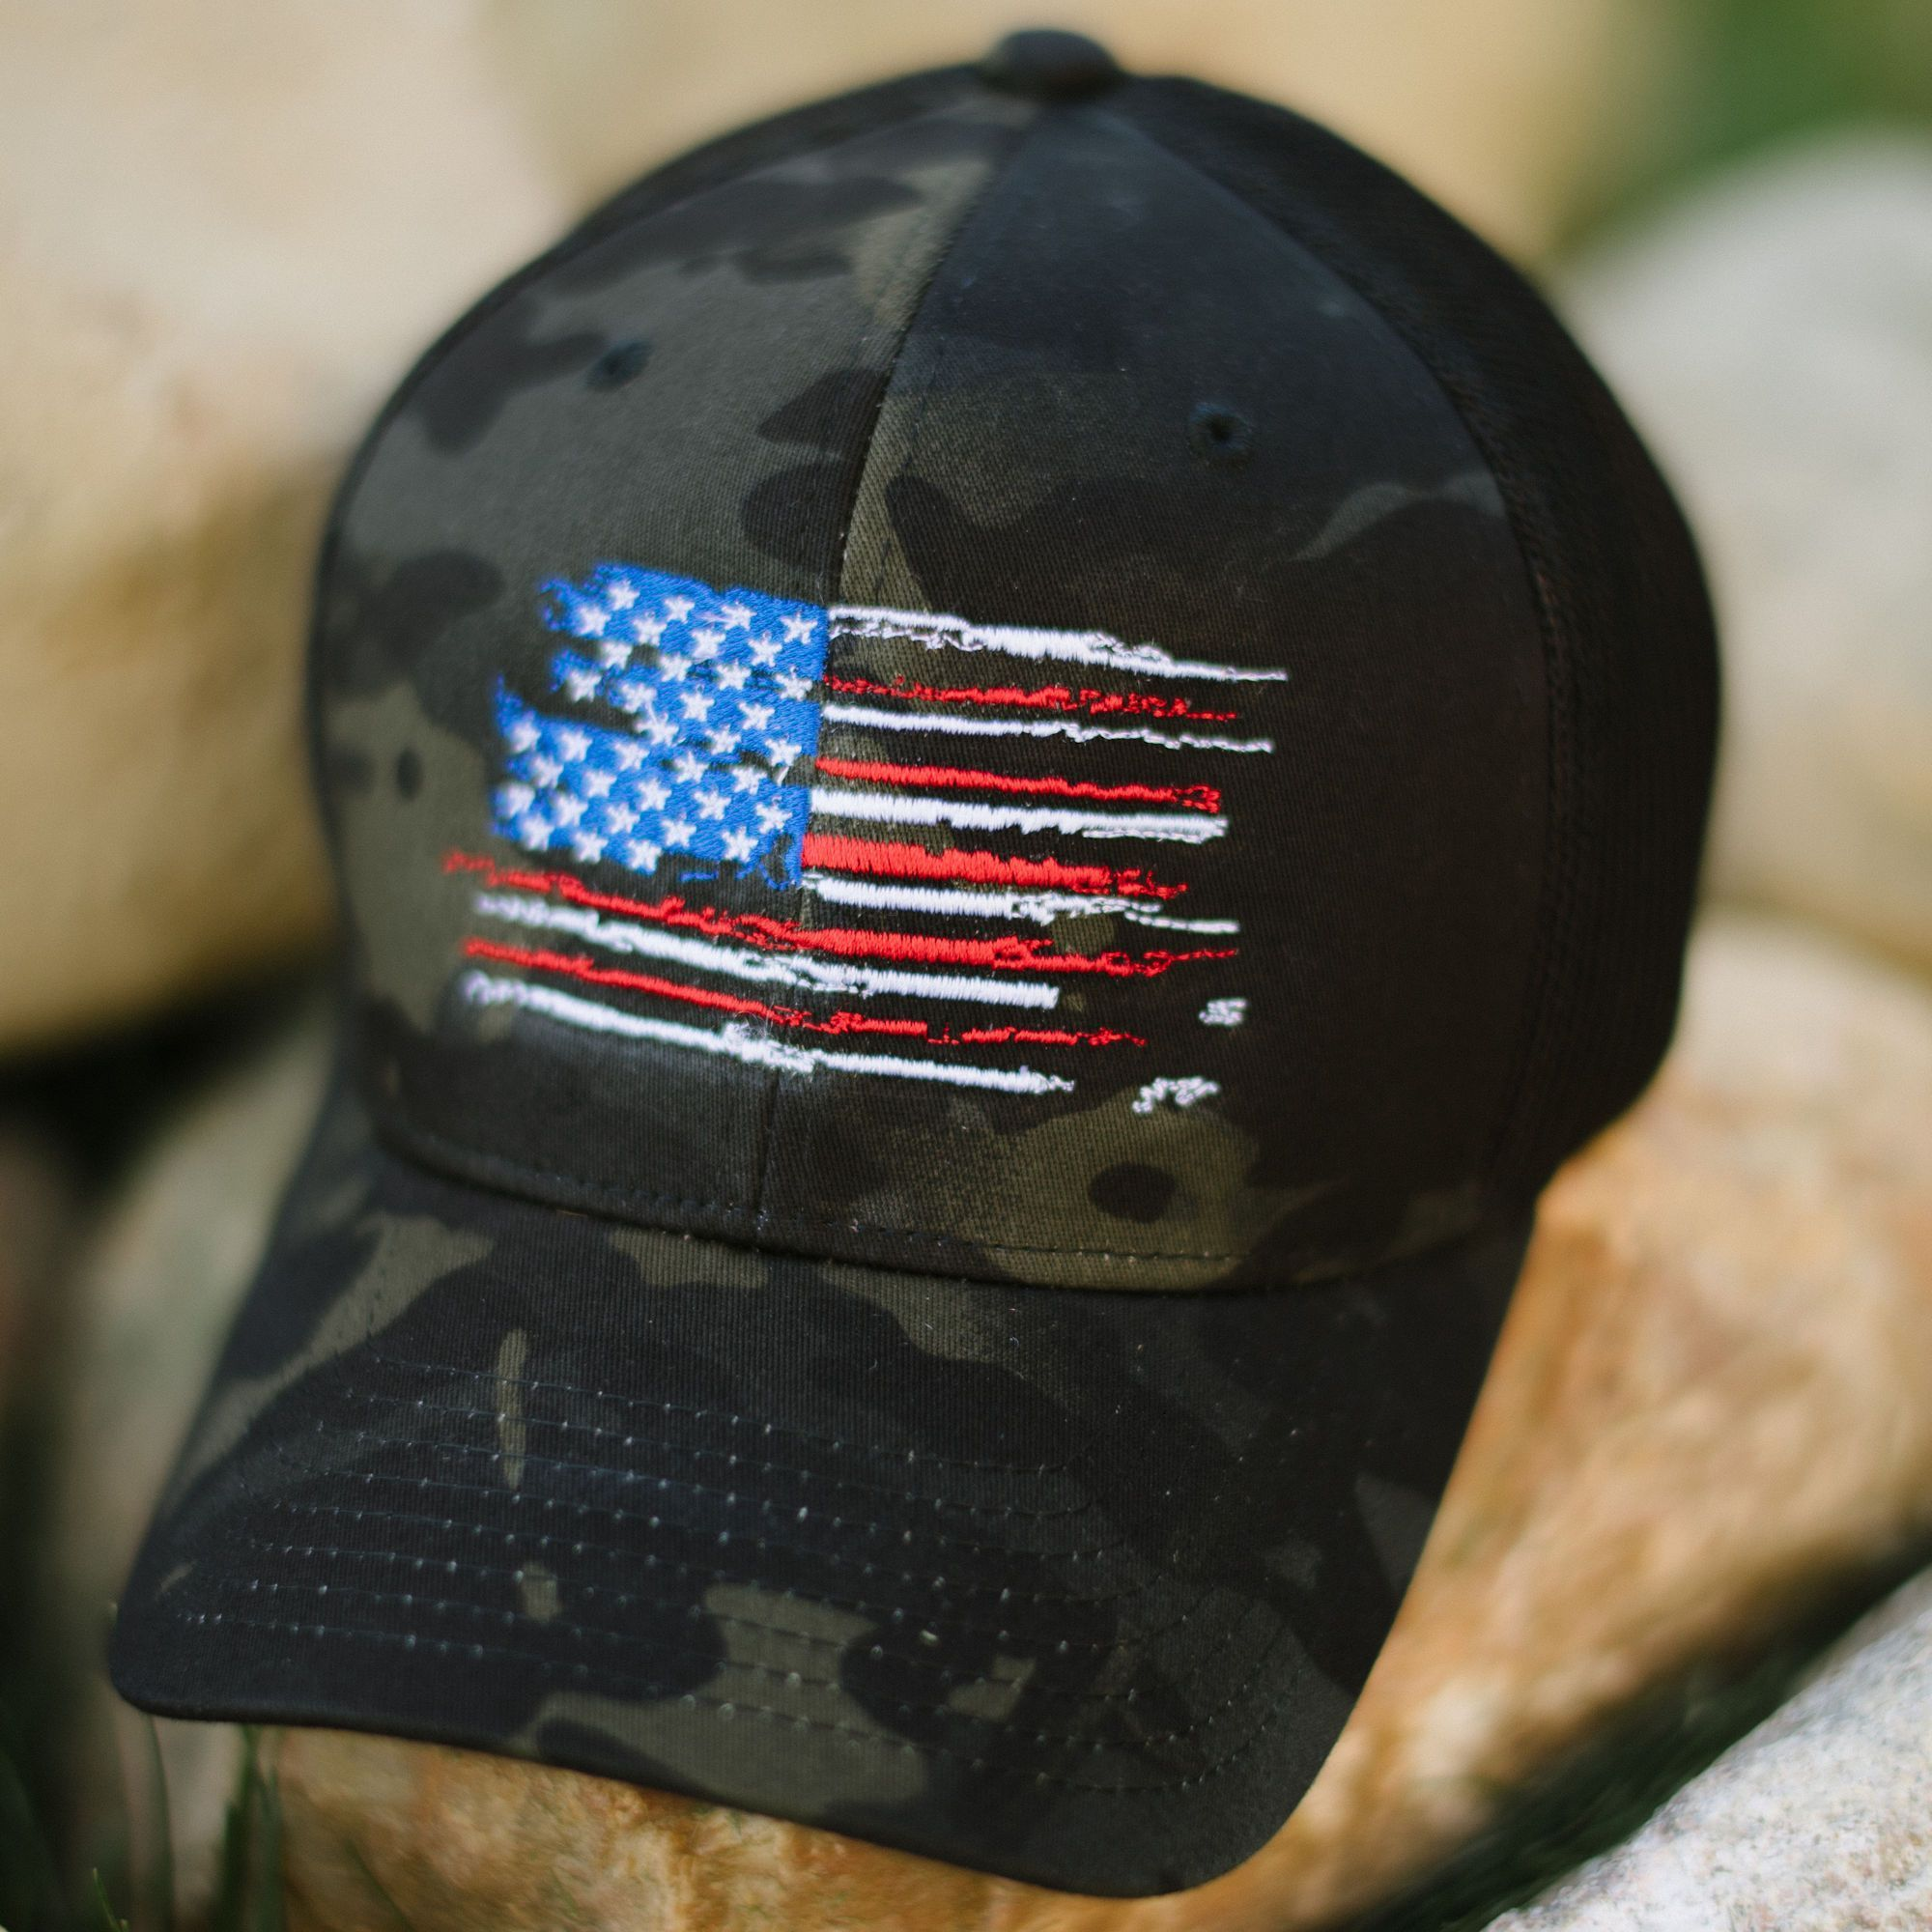 US Flag - MultiCam Black Flexfit Hat Patriotic Koss Outdoors 487b2c47d00